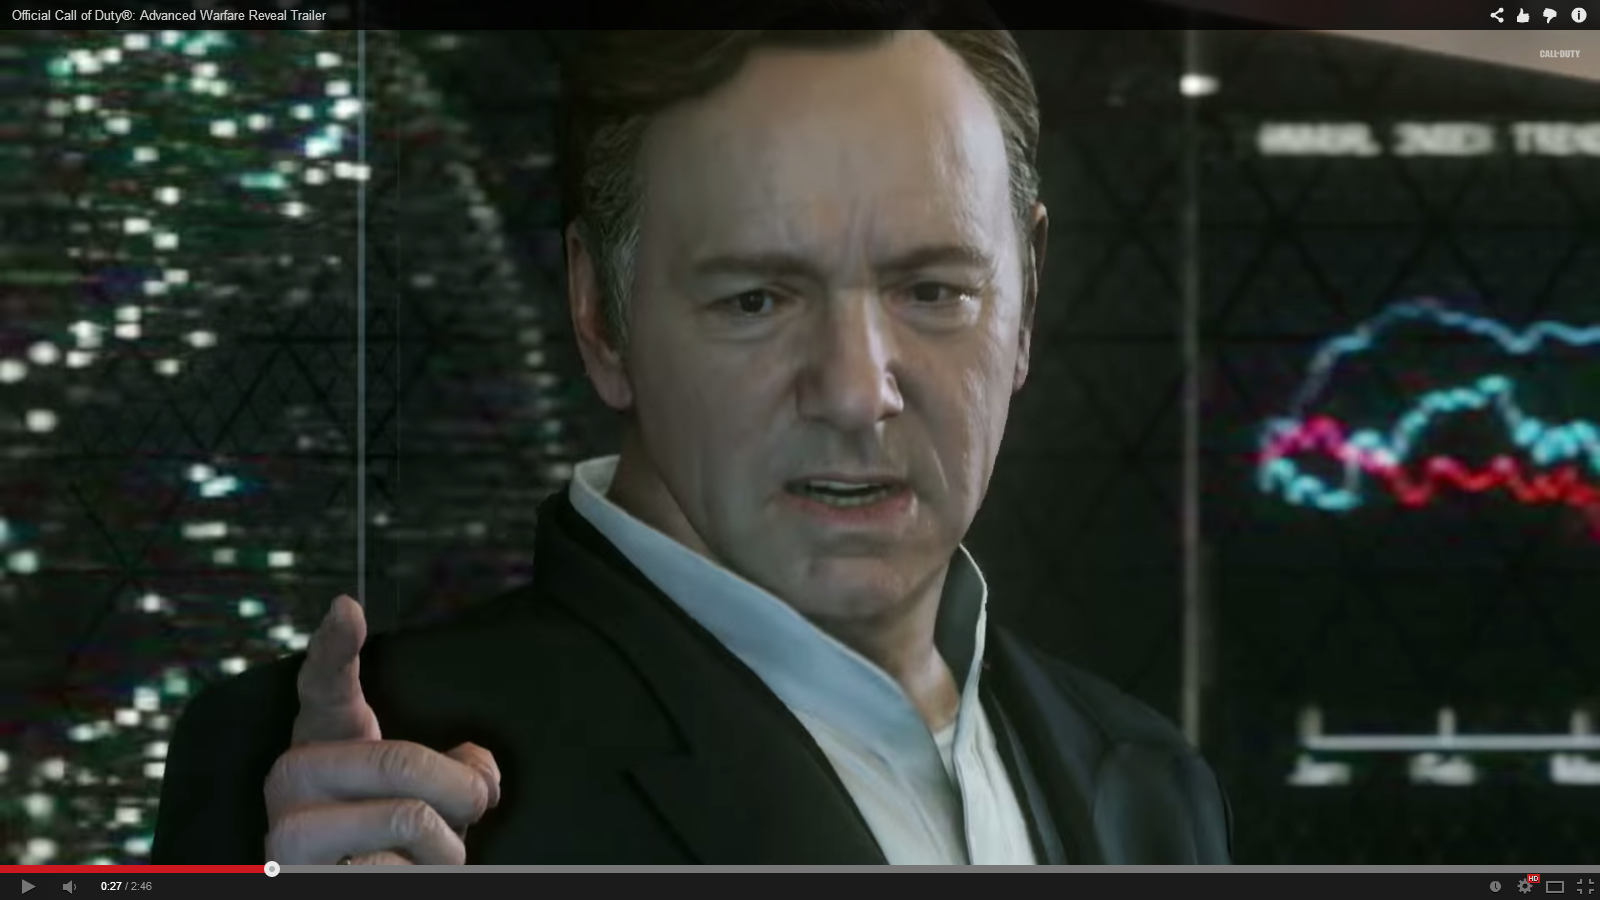 Call of Duty: Advanced Warfare minimum PC requirements released